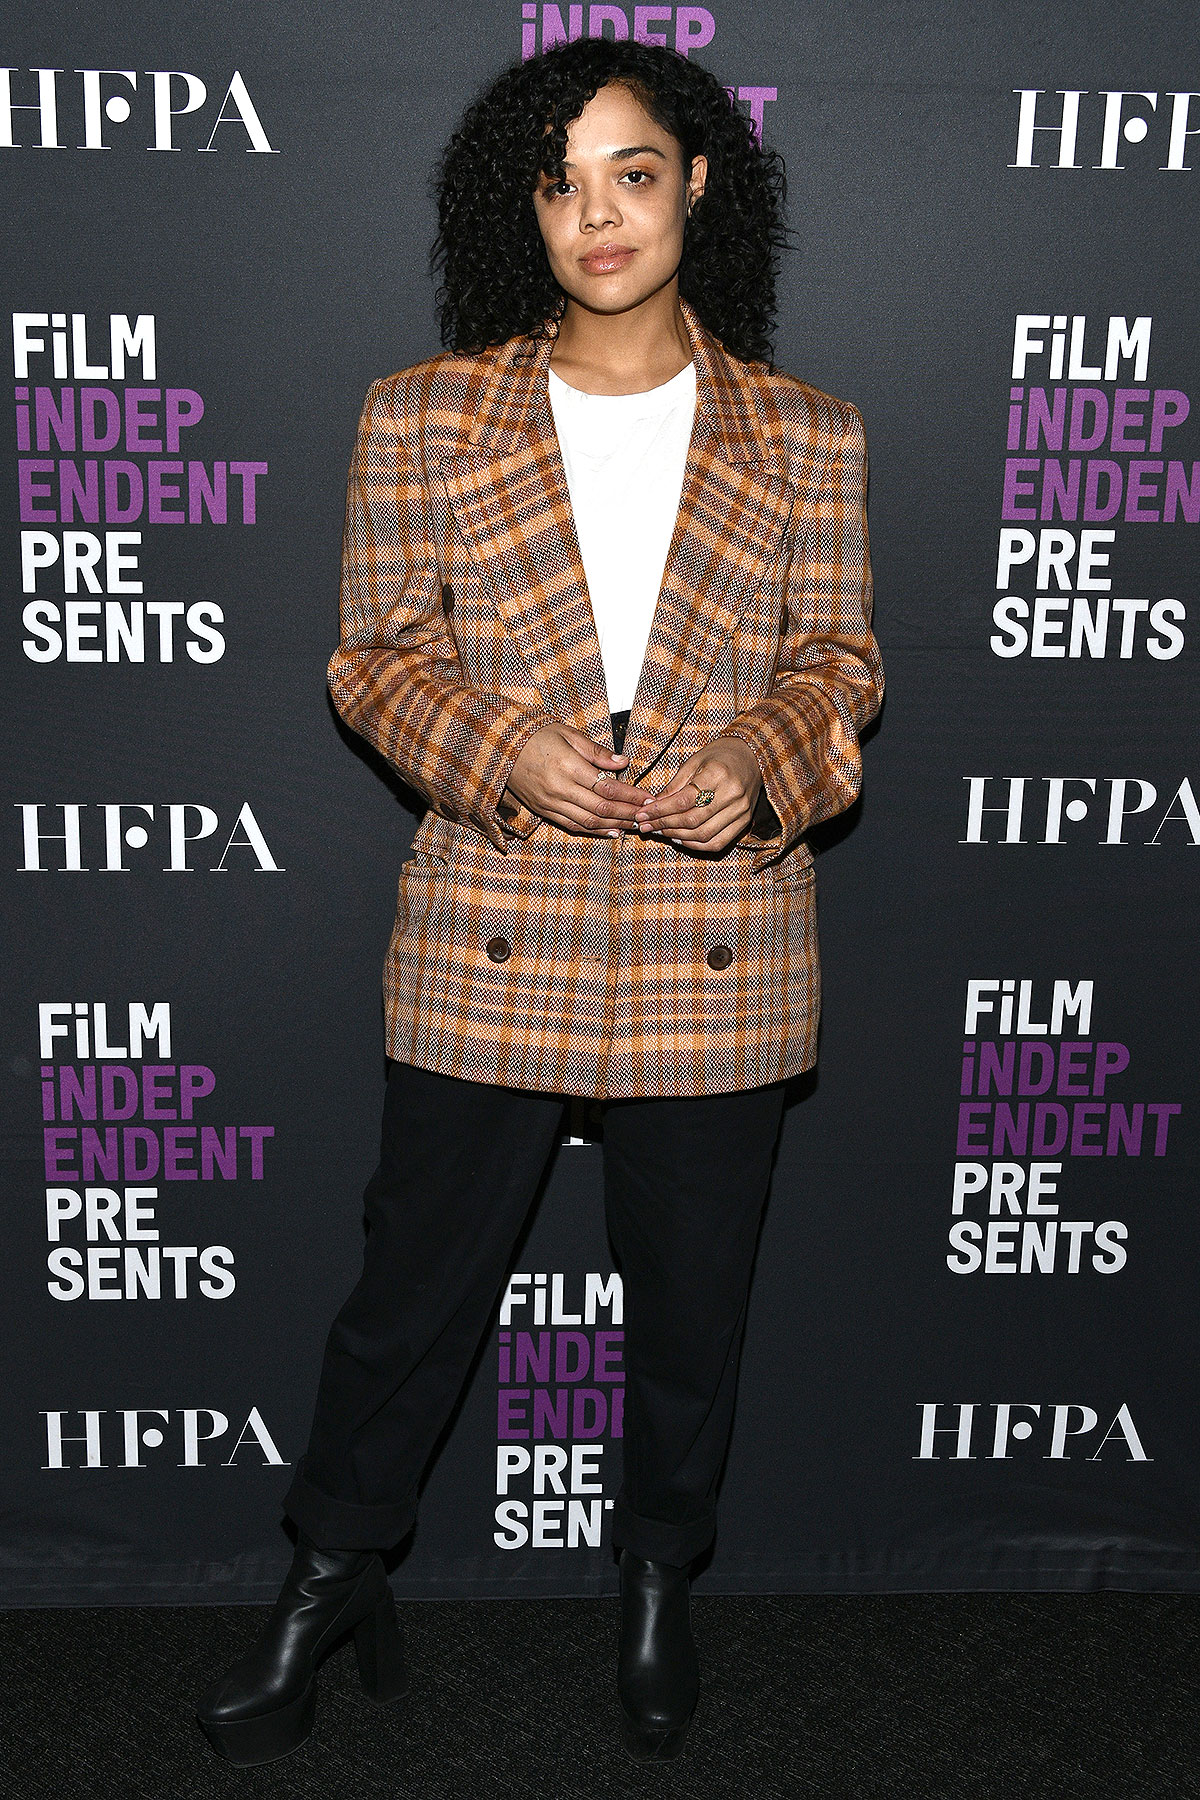 """Tessa Thompson at the Film Independent screening series presents a live read of """"Eternal Sunshine Of The Spotless Mind"""" at DGA Theater on March 04, 2020 in Los Angeles, California."""